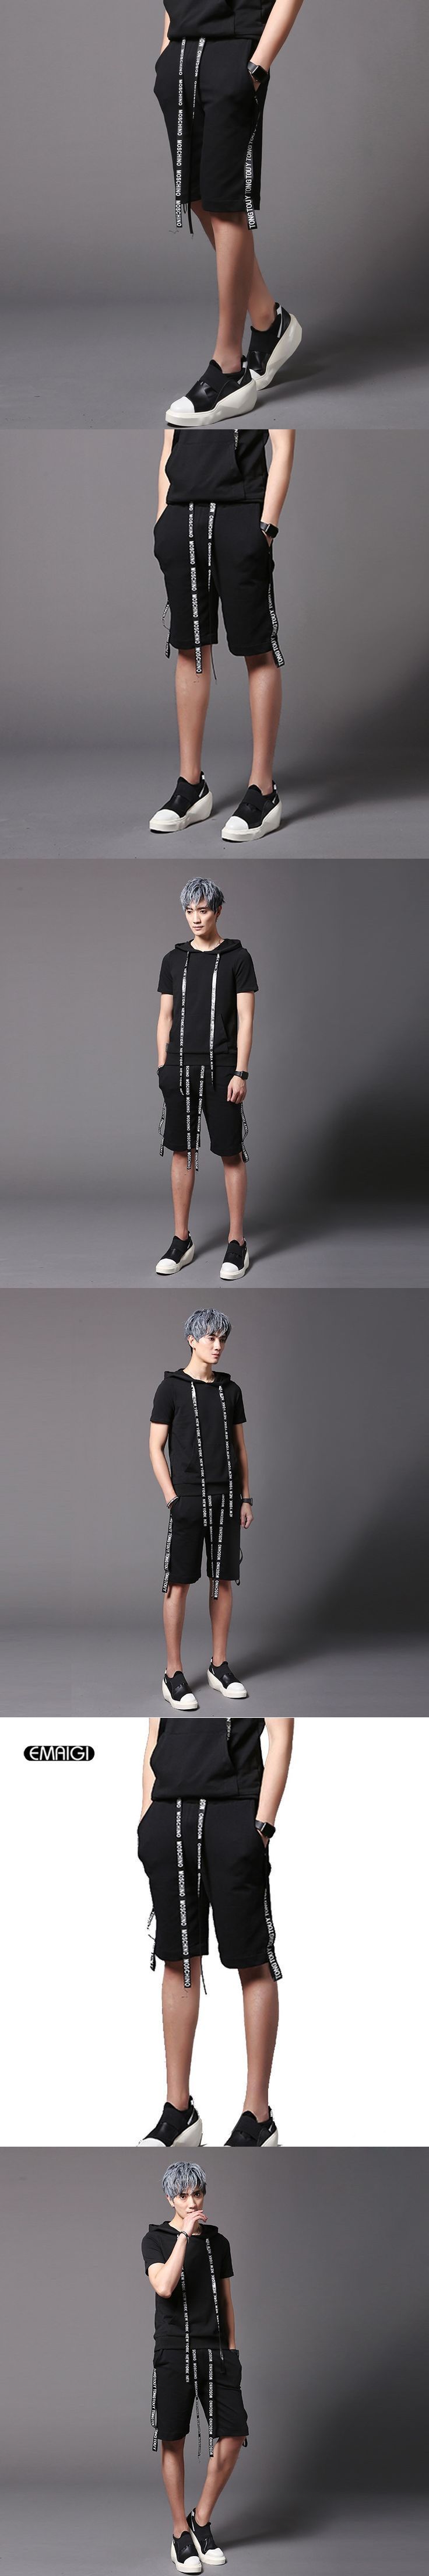 Ribbon Decorated Street Fashion Men Shorts Punk Hip-hop Male Summer Casual Shorts Stage Show Costumes